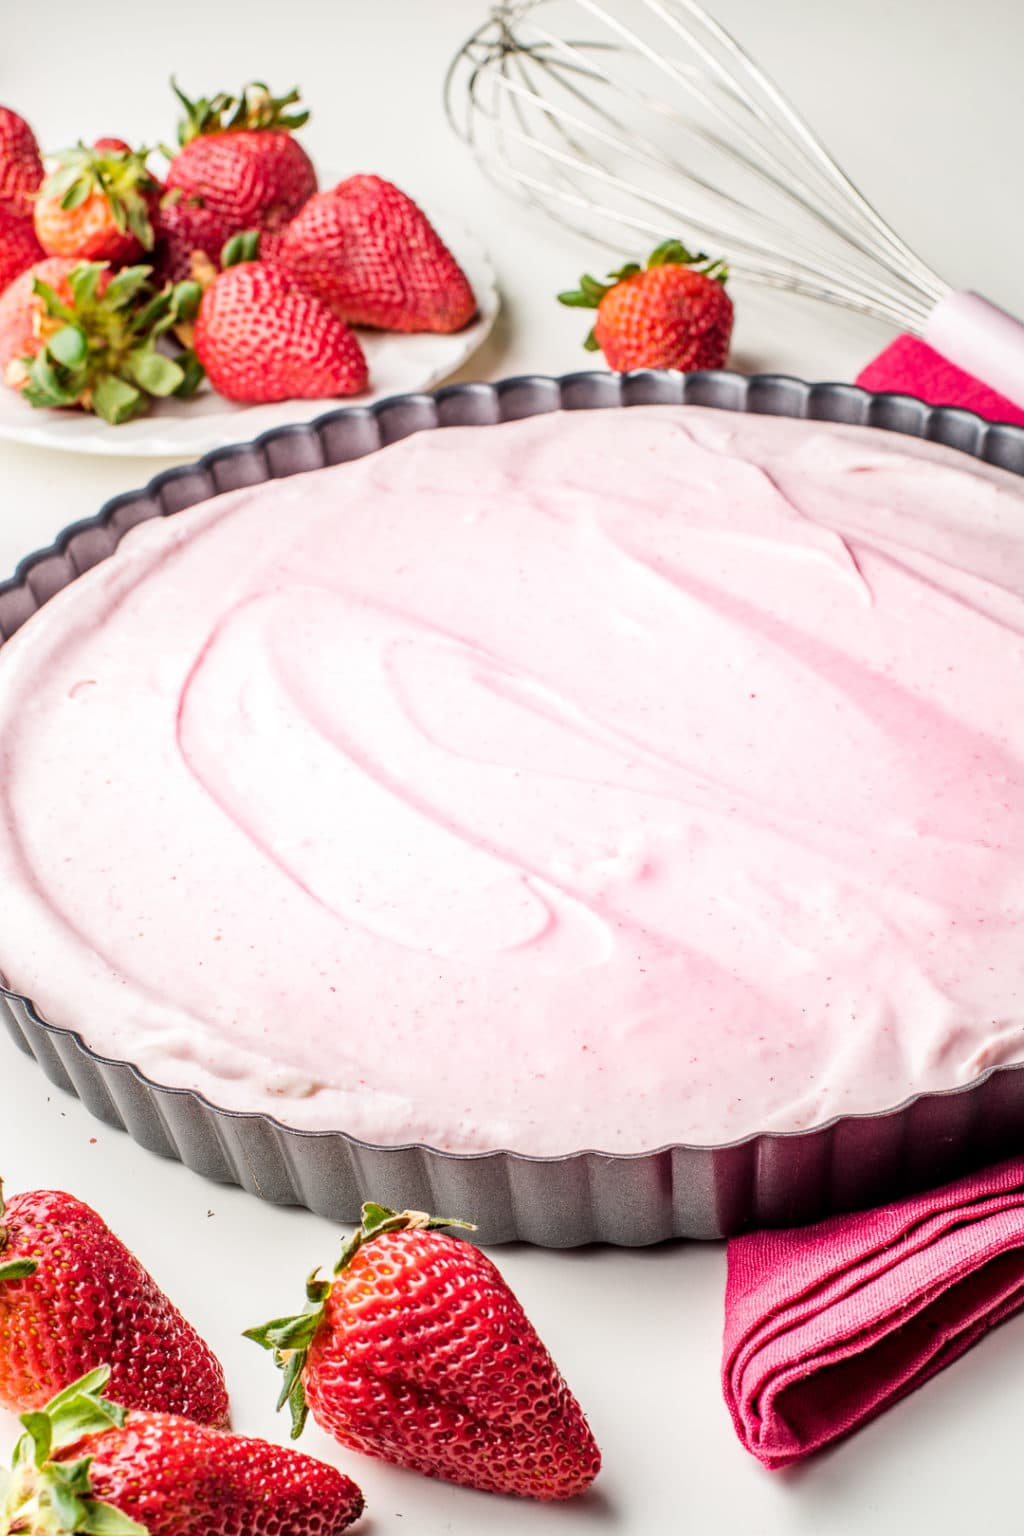 Strawberry cream pie filling inside of a tart pan surrounded by fresh strawberries